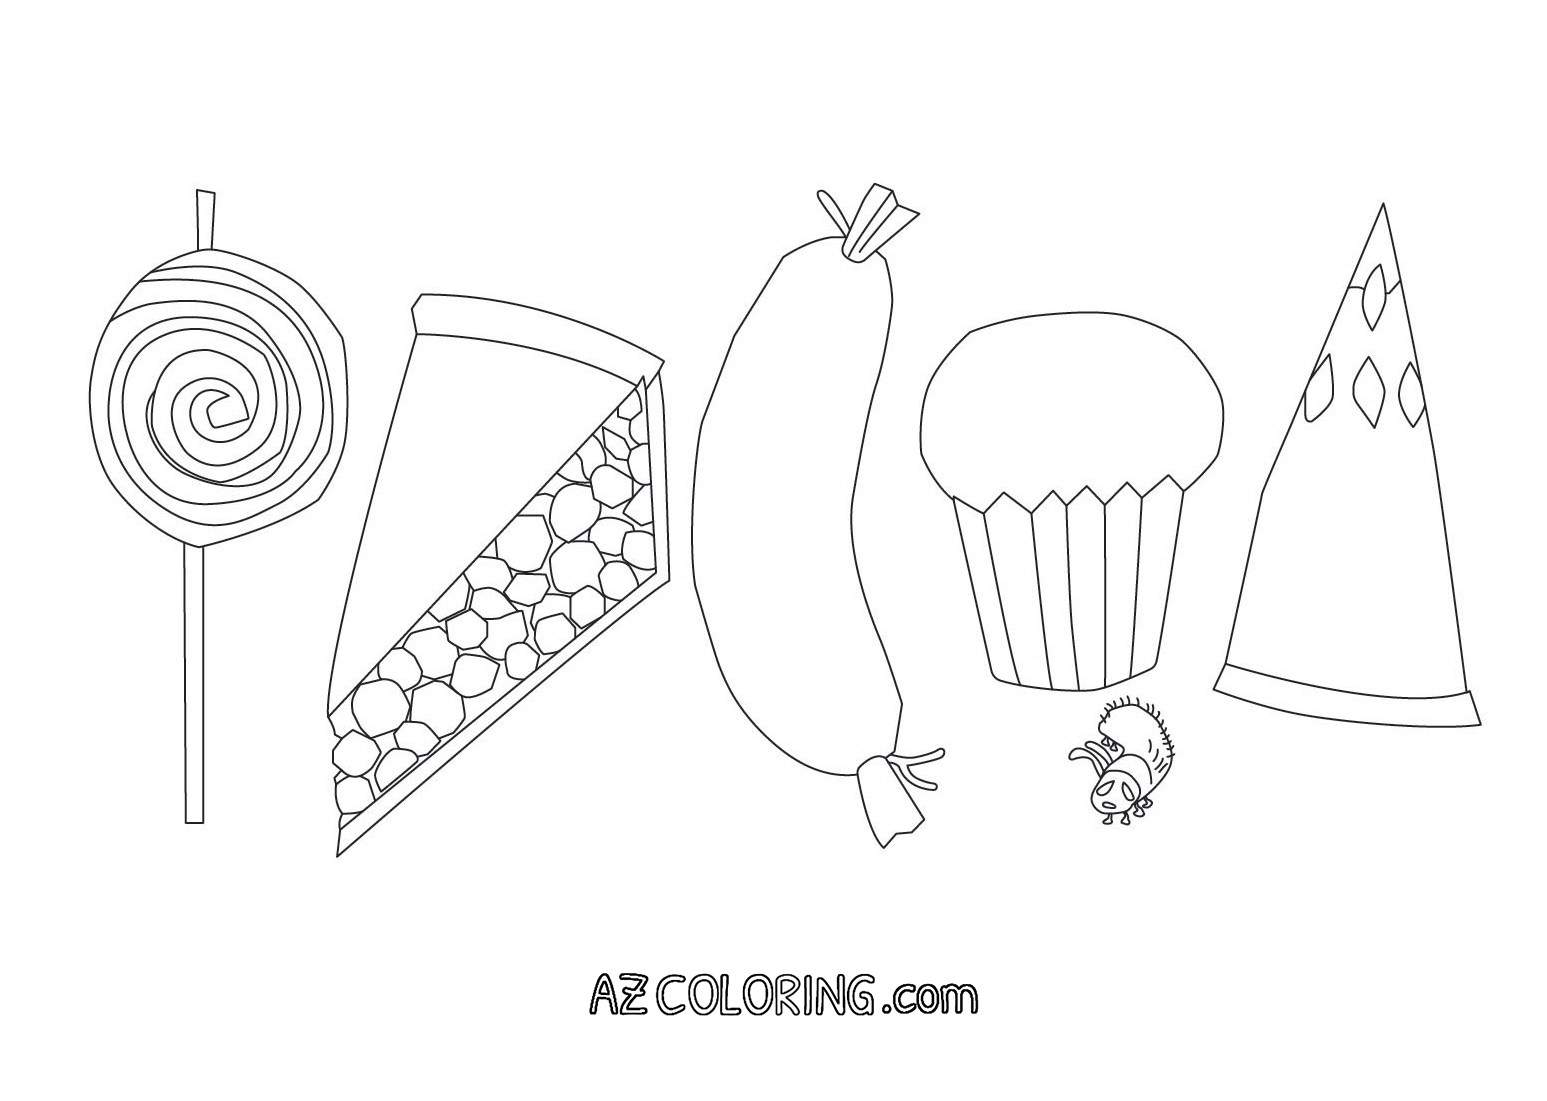 Hungry Caterpillar Coloring Pages Coloring Pages Very Hungry Caterpillar Page Az Printables To Print